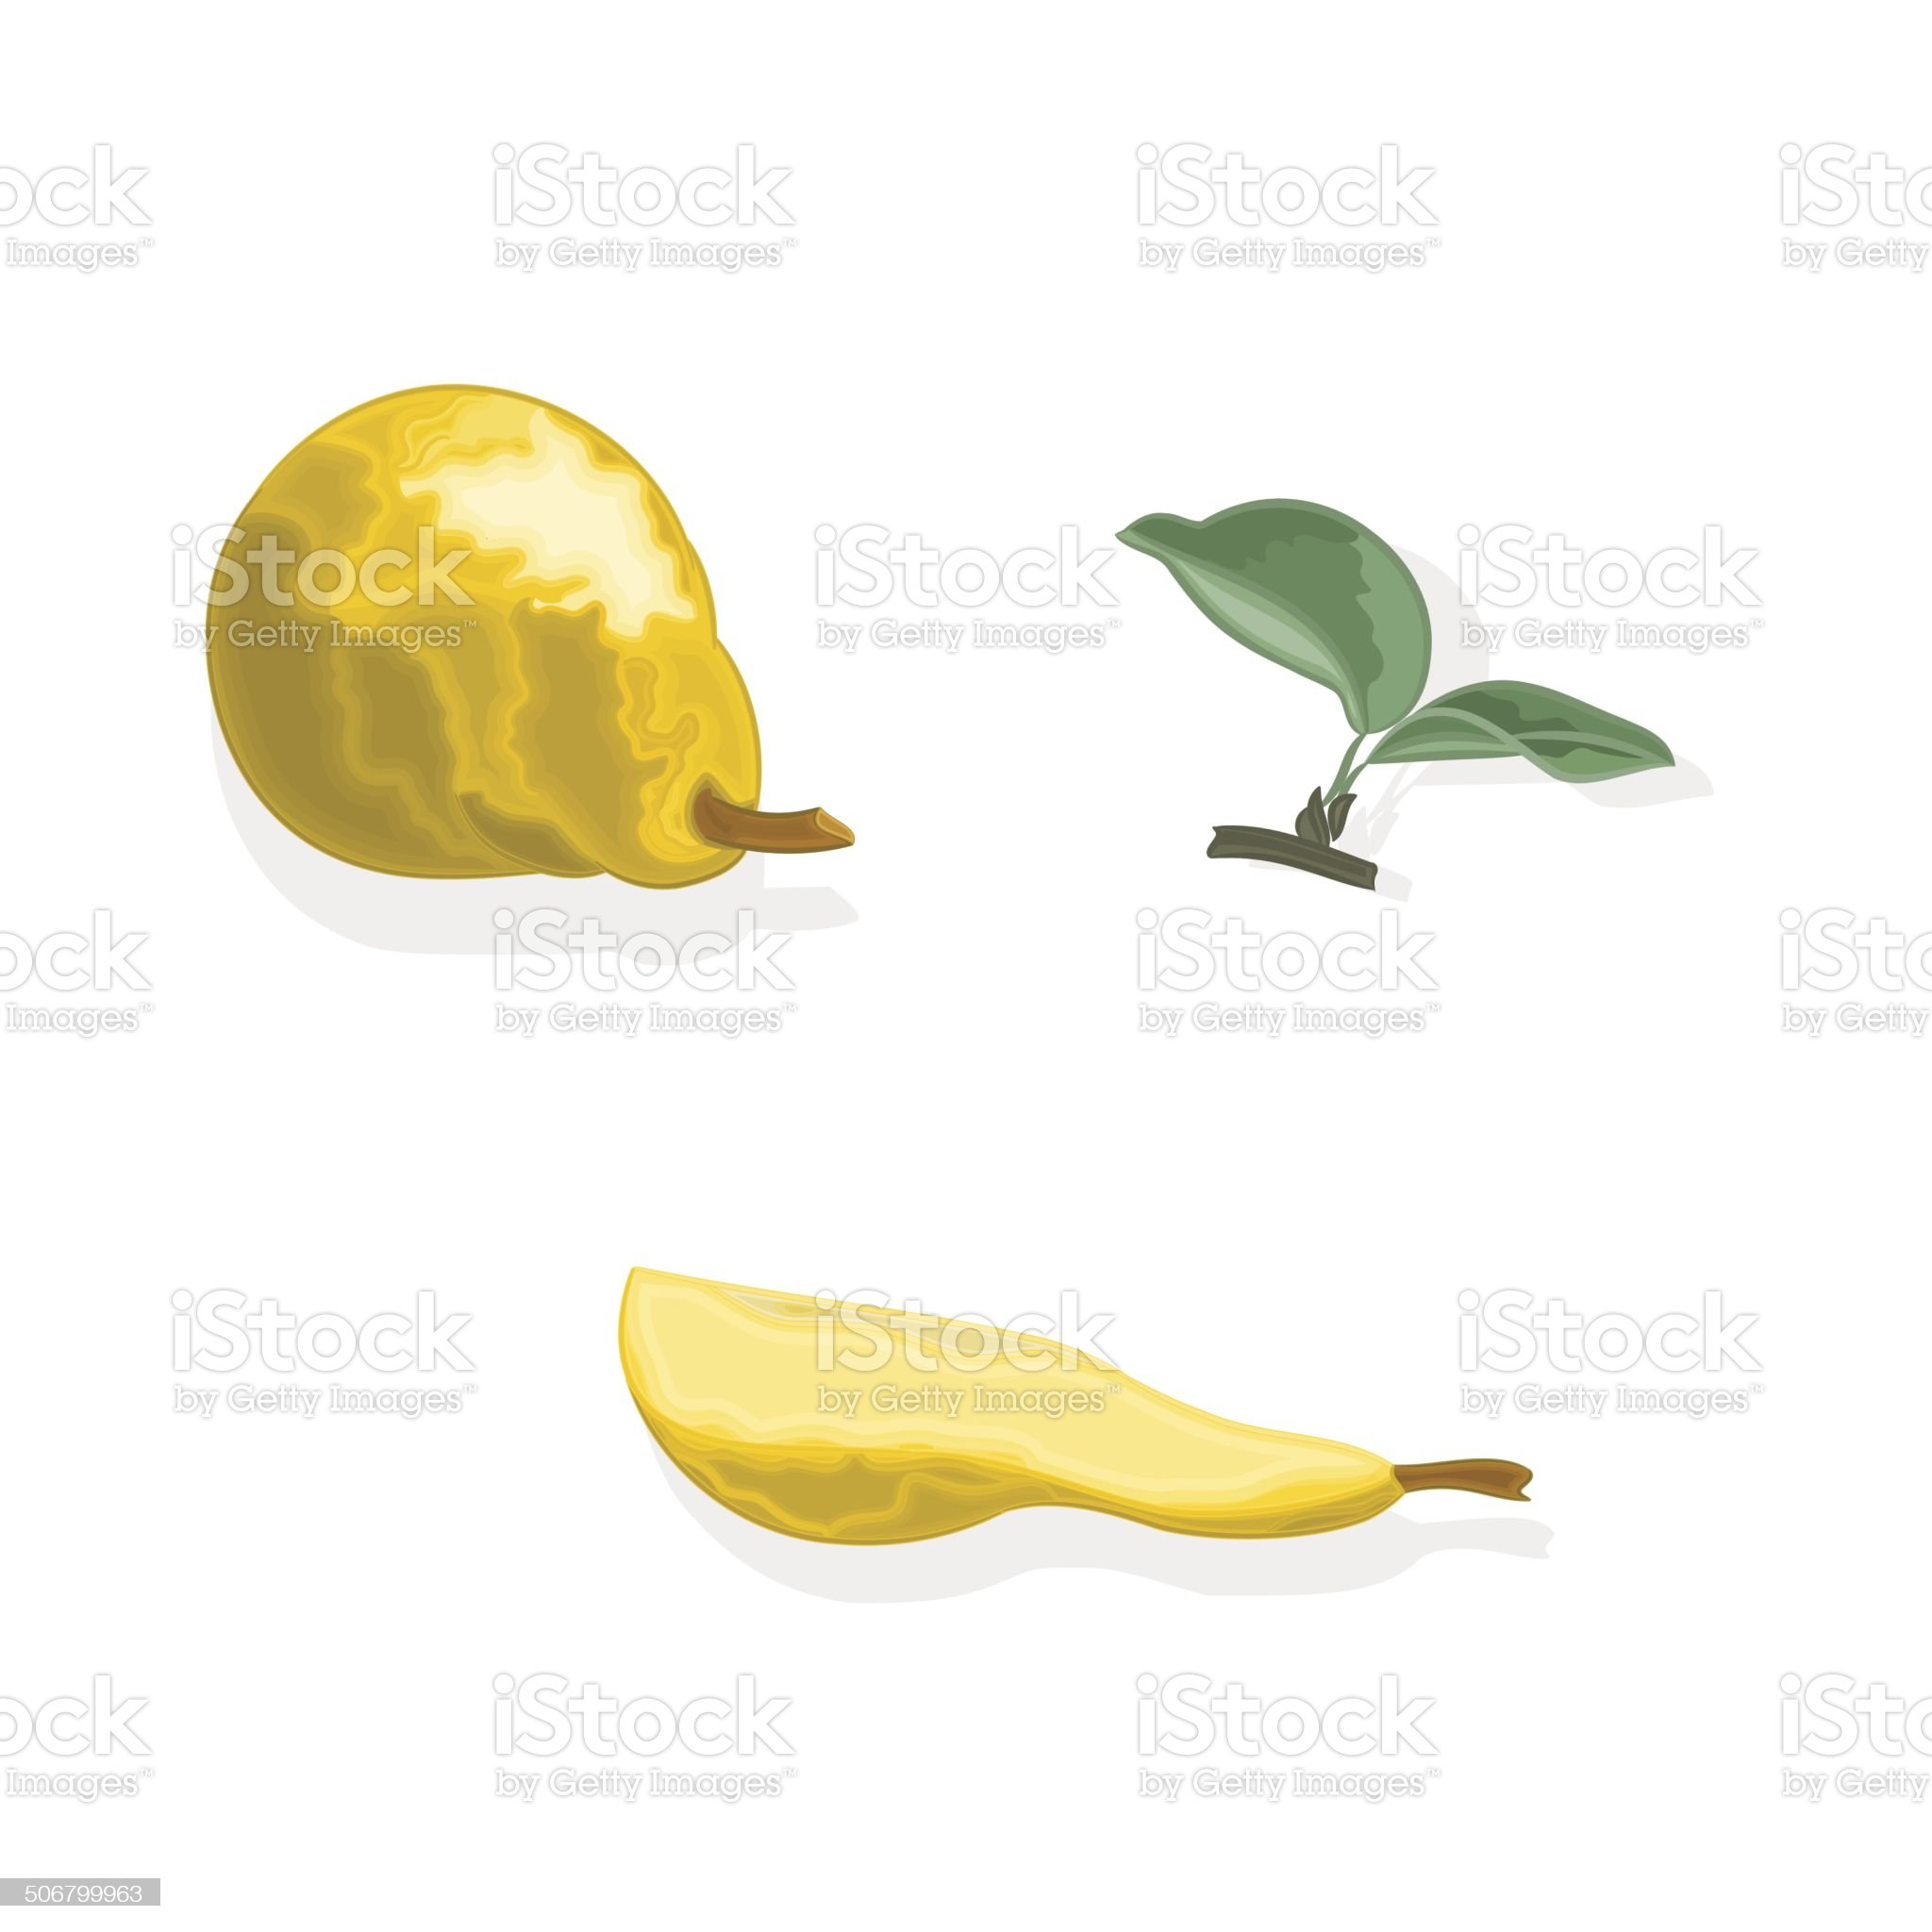 Pear and a querter  of pear with leaves Vector royalty-free stock vector art